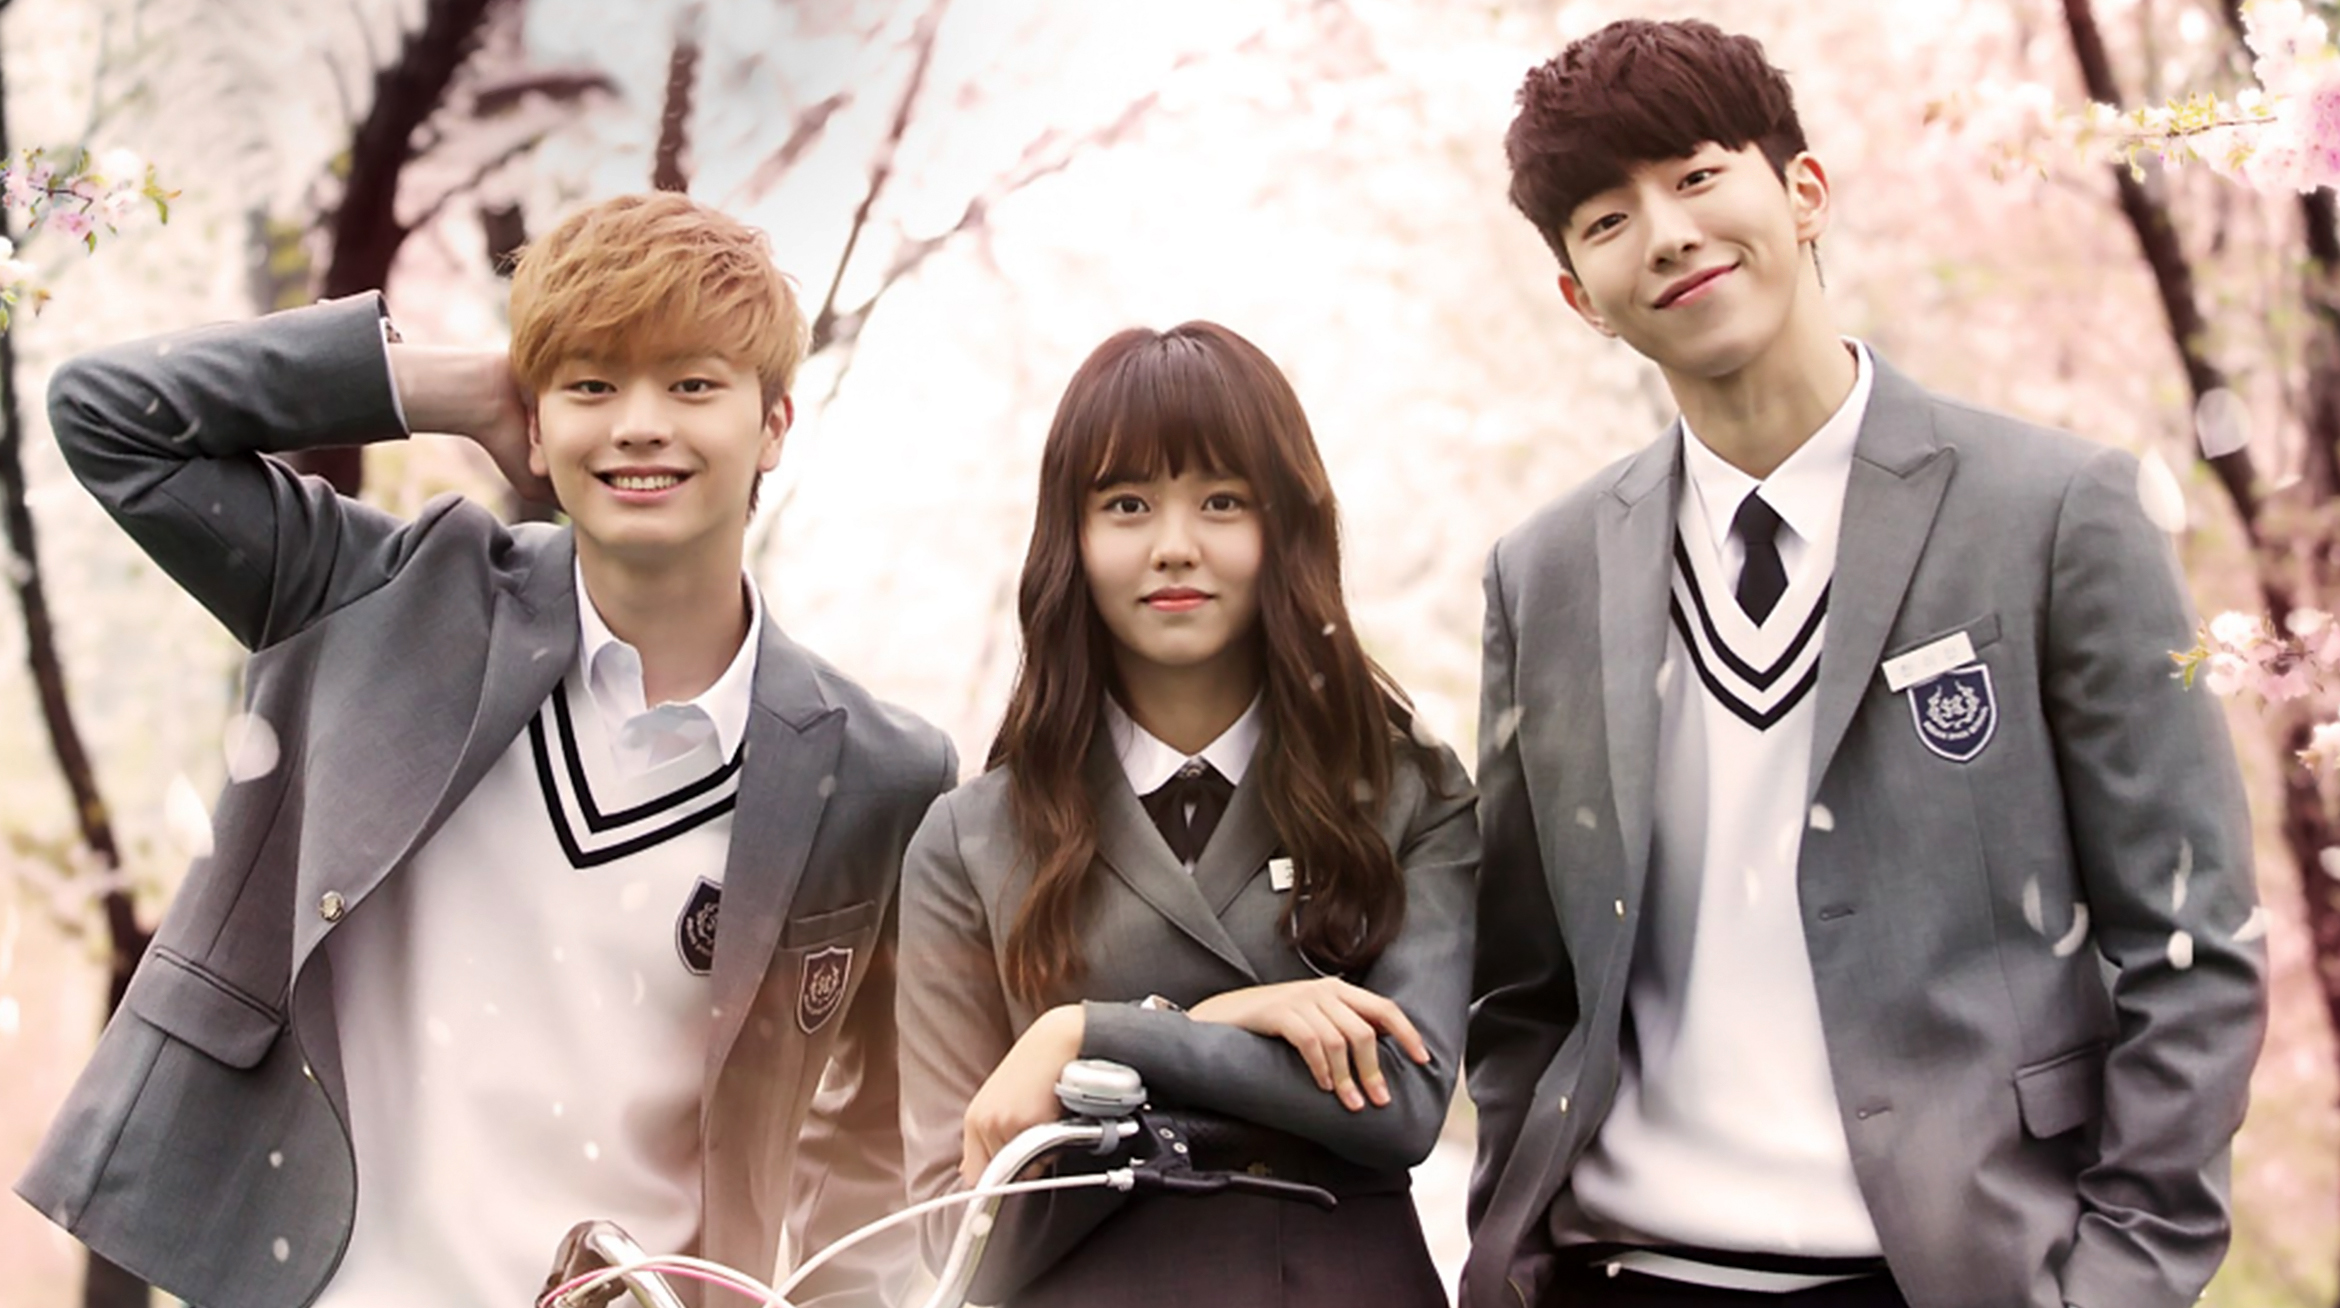 Resultado de imagen para who are you school 2015